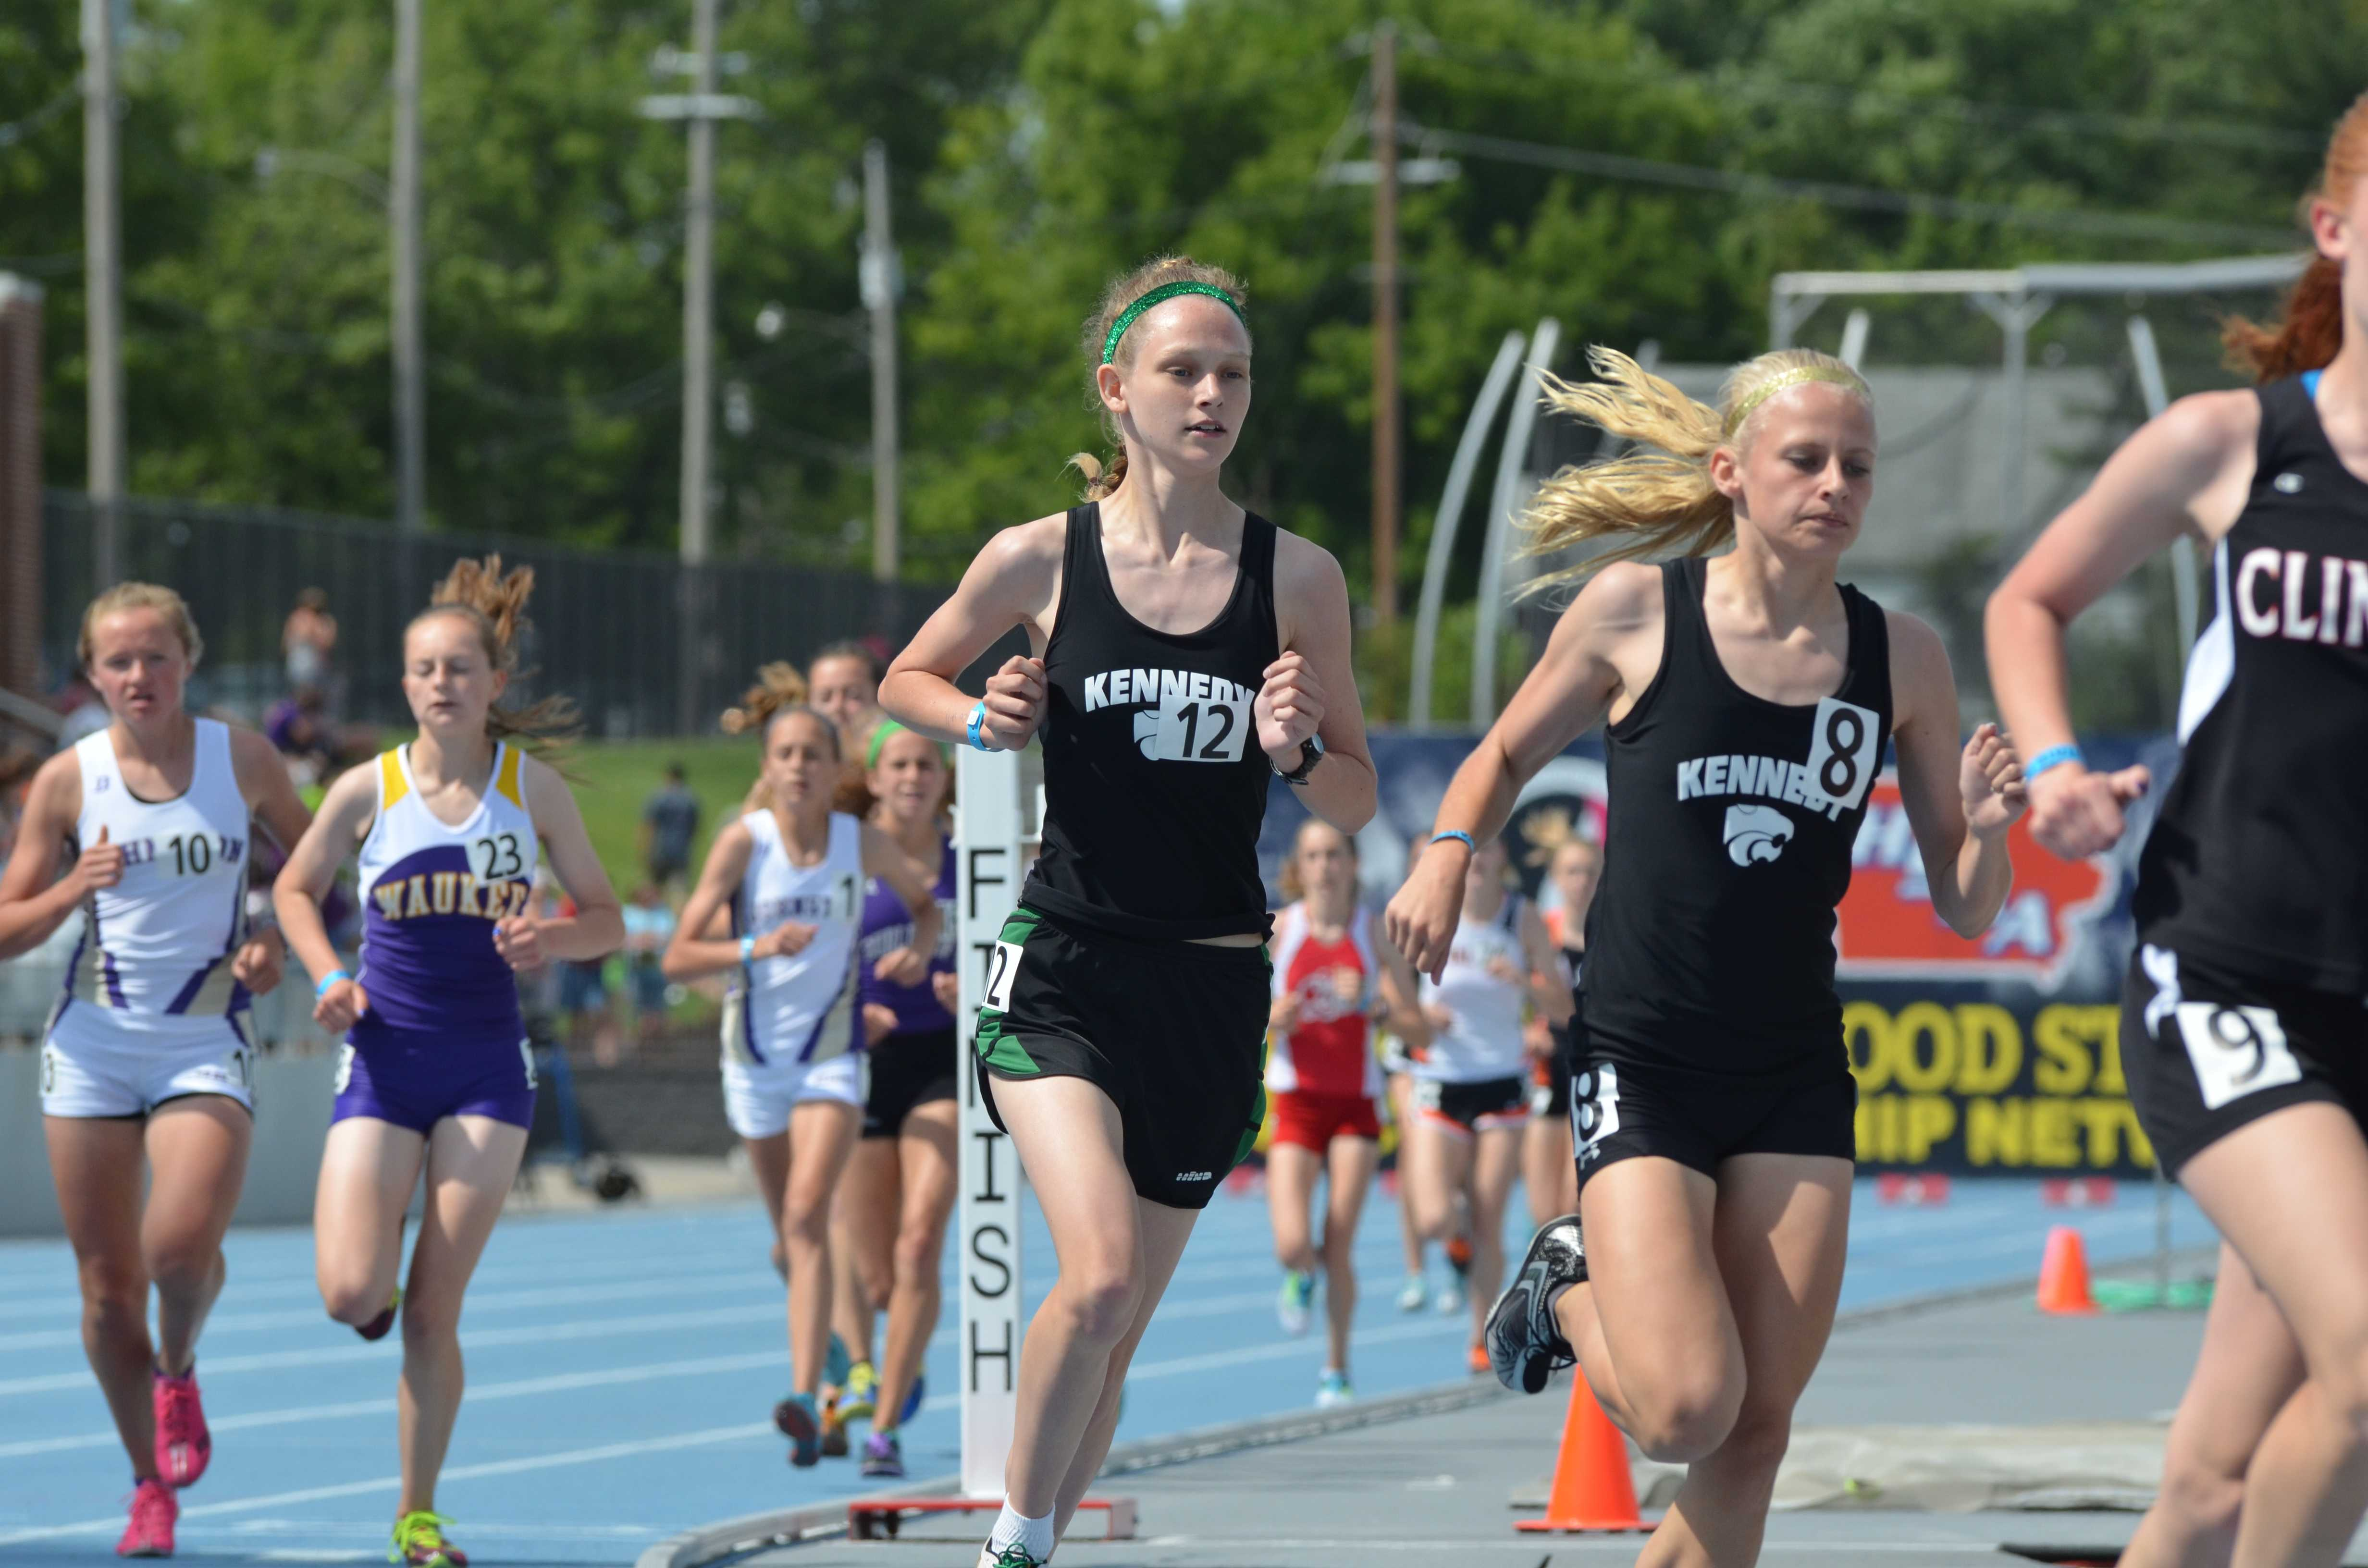 Allison Culver, so., and Alyssa Averhoff, so., run together in the 3000m.